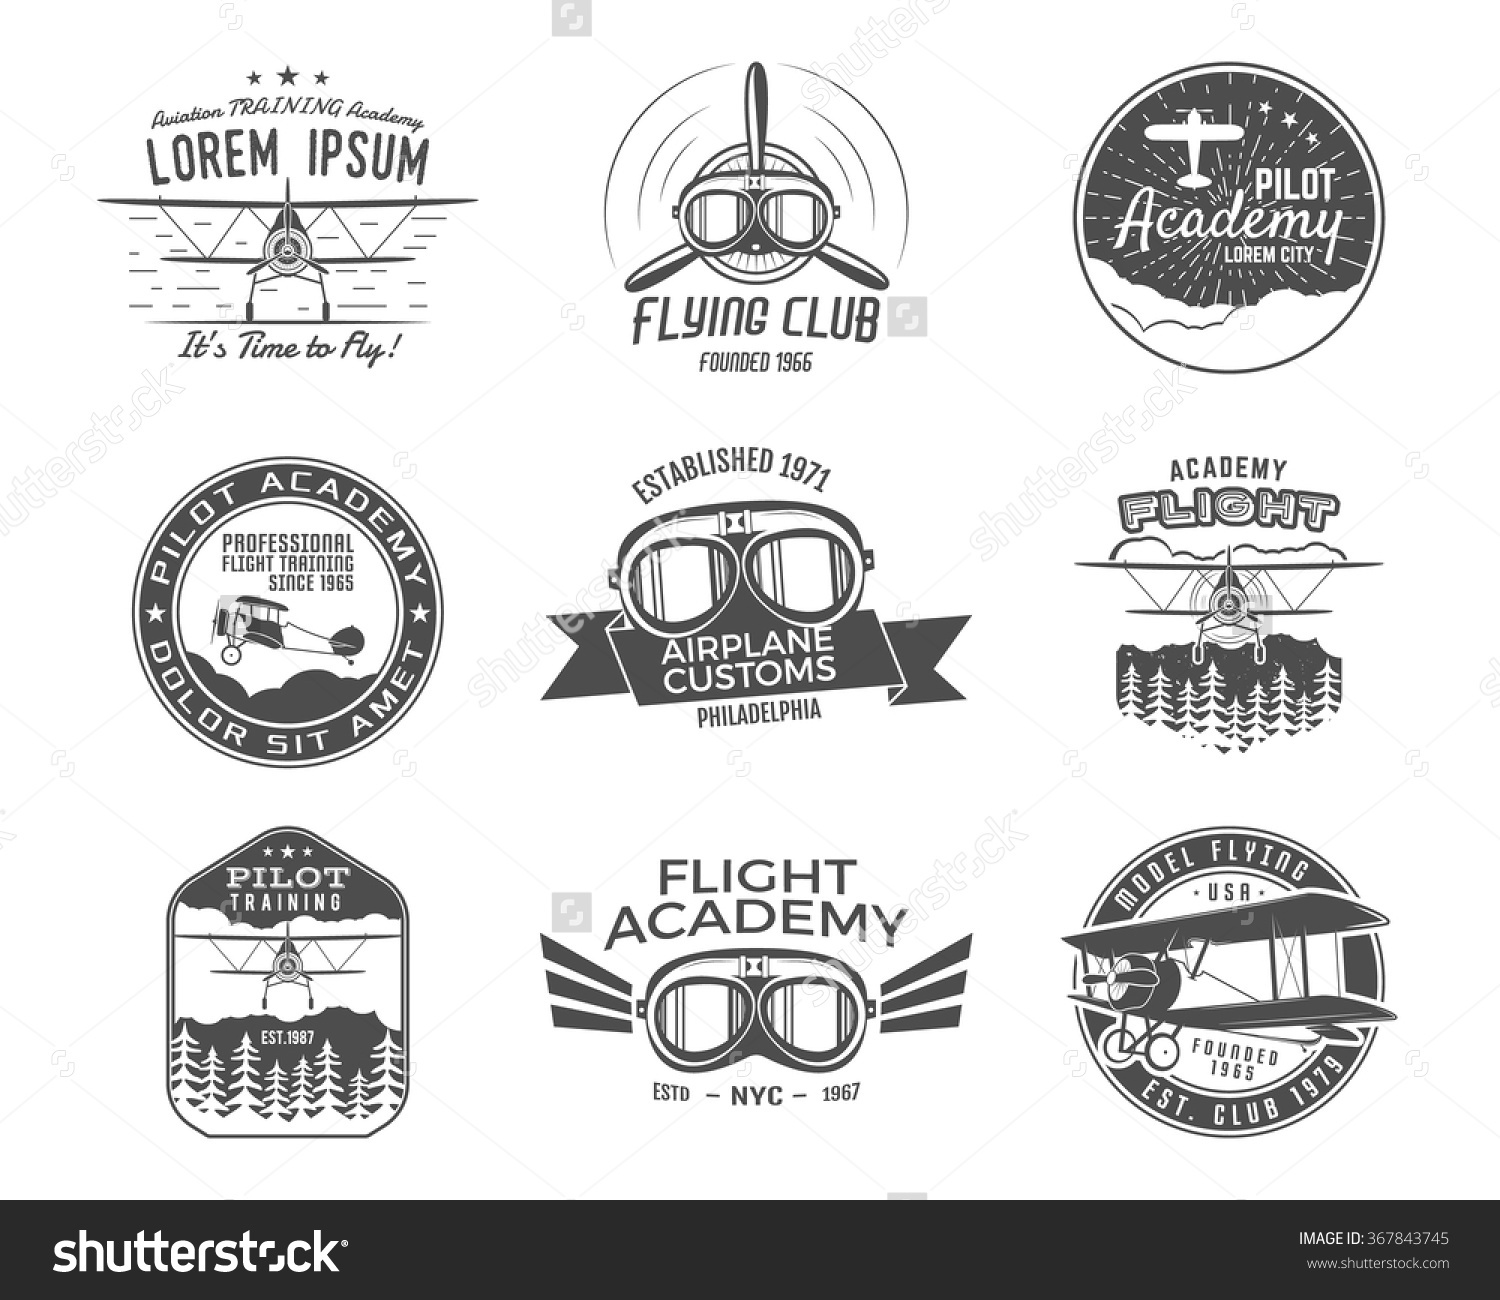 Plane Stamp Clipart 20 Free Cliparts